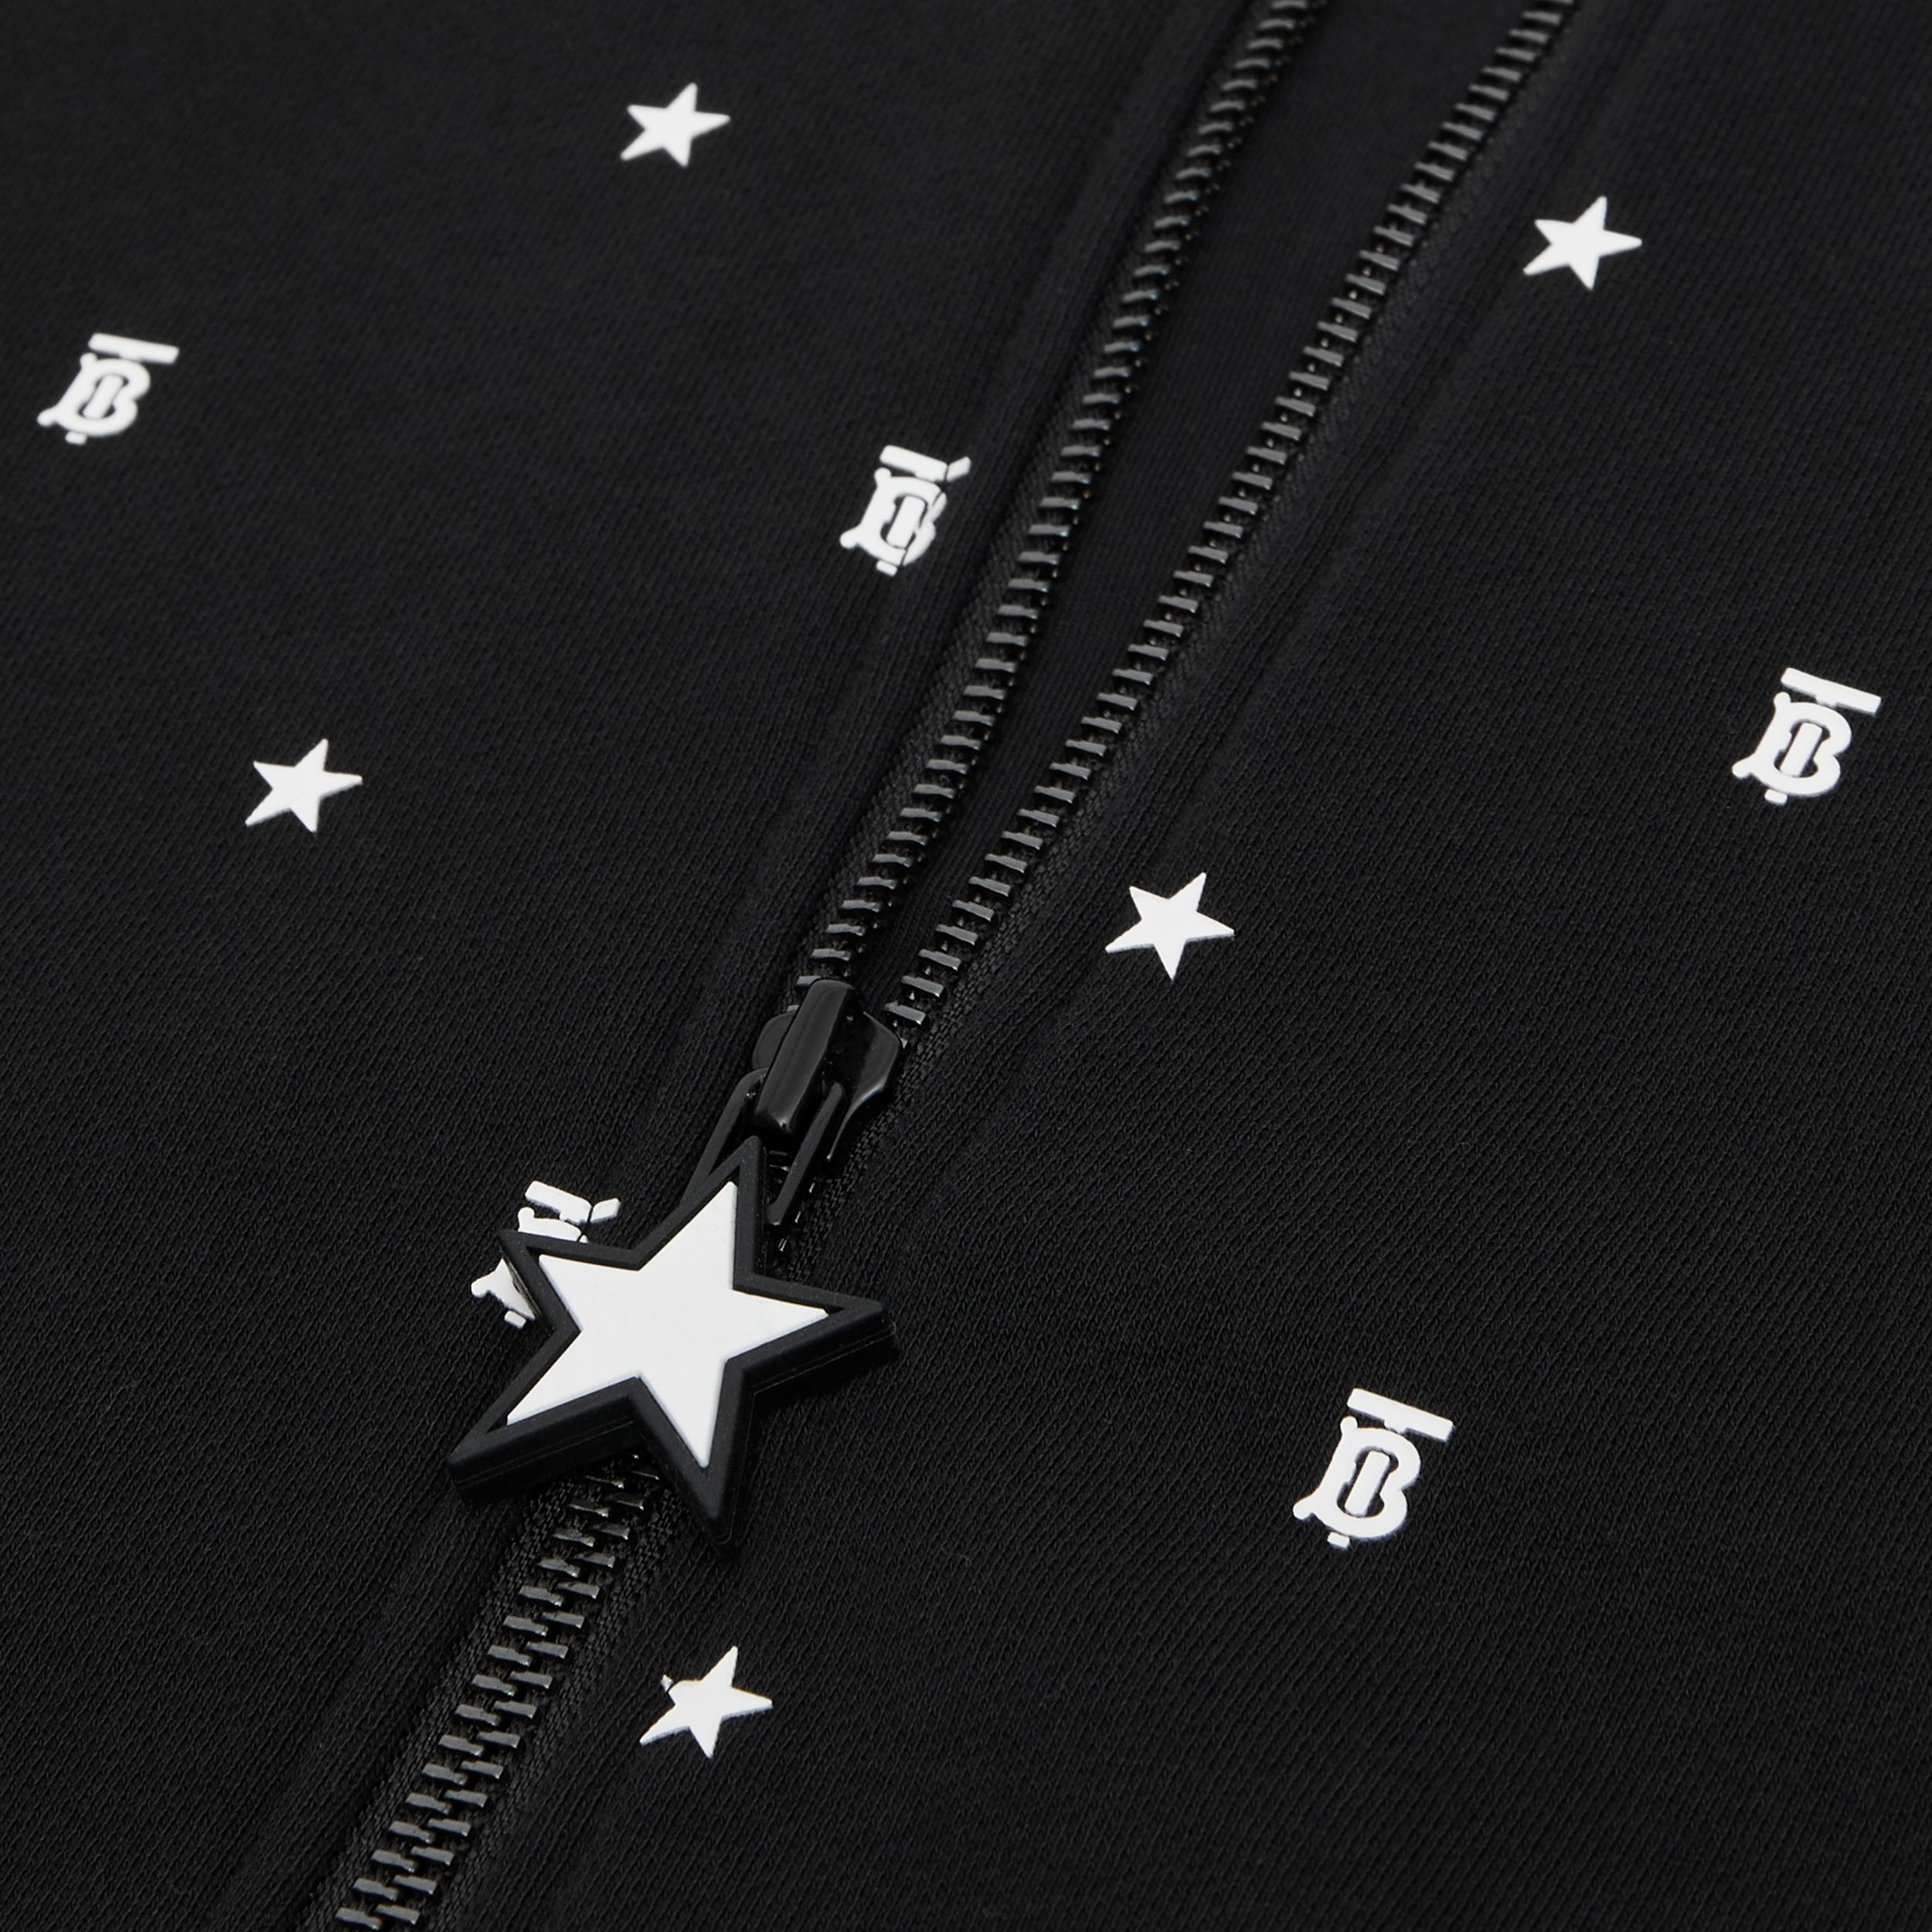 Star and Monogram Motif Cotton Hooded Top in Black | Burberry United States - 2